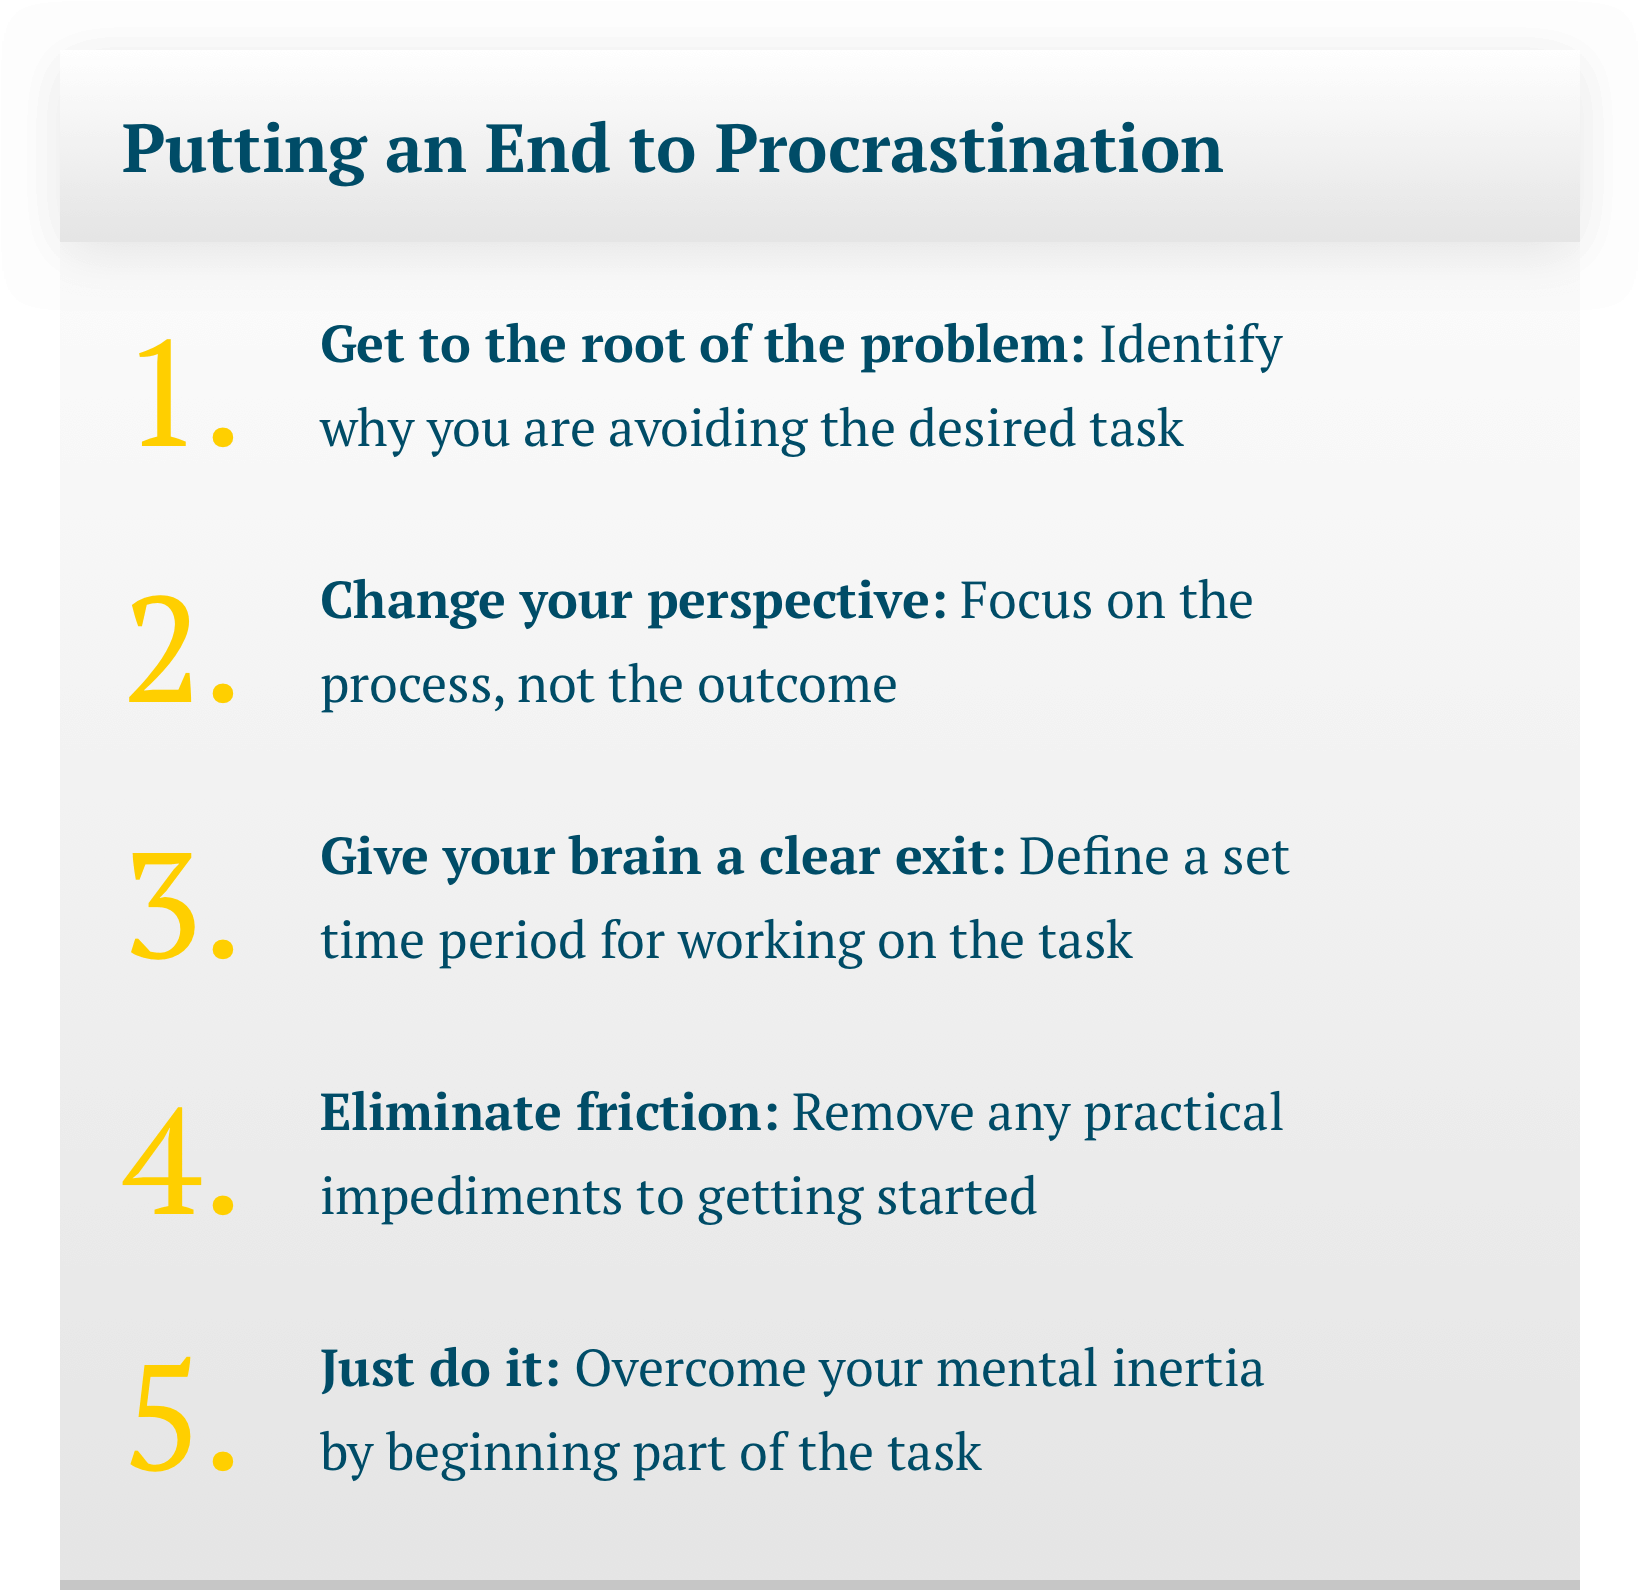 A 5-point text guide to putting an end to procrastination. Title: Putting an End to Procrastination; Step 1: Get to the root of the problem: Identify why you are avoiding the desired task; Step 2: Change your perspective: Focus on the process, not the outcome; Step 3: Give your brain a clear exit: Define a set time period for working on the task; Step 4: Eliminate friction: Remove any practical impediments to getting started; Step 5: Just do it: Overcome your mental inertia by beginning part of the task